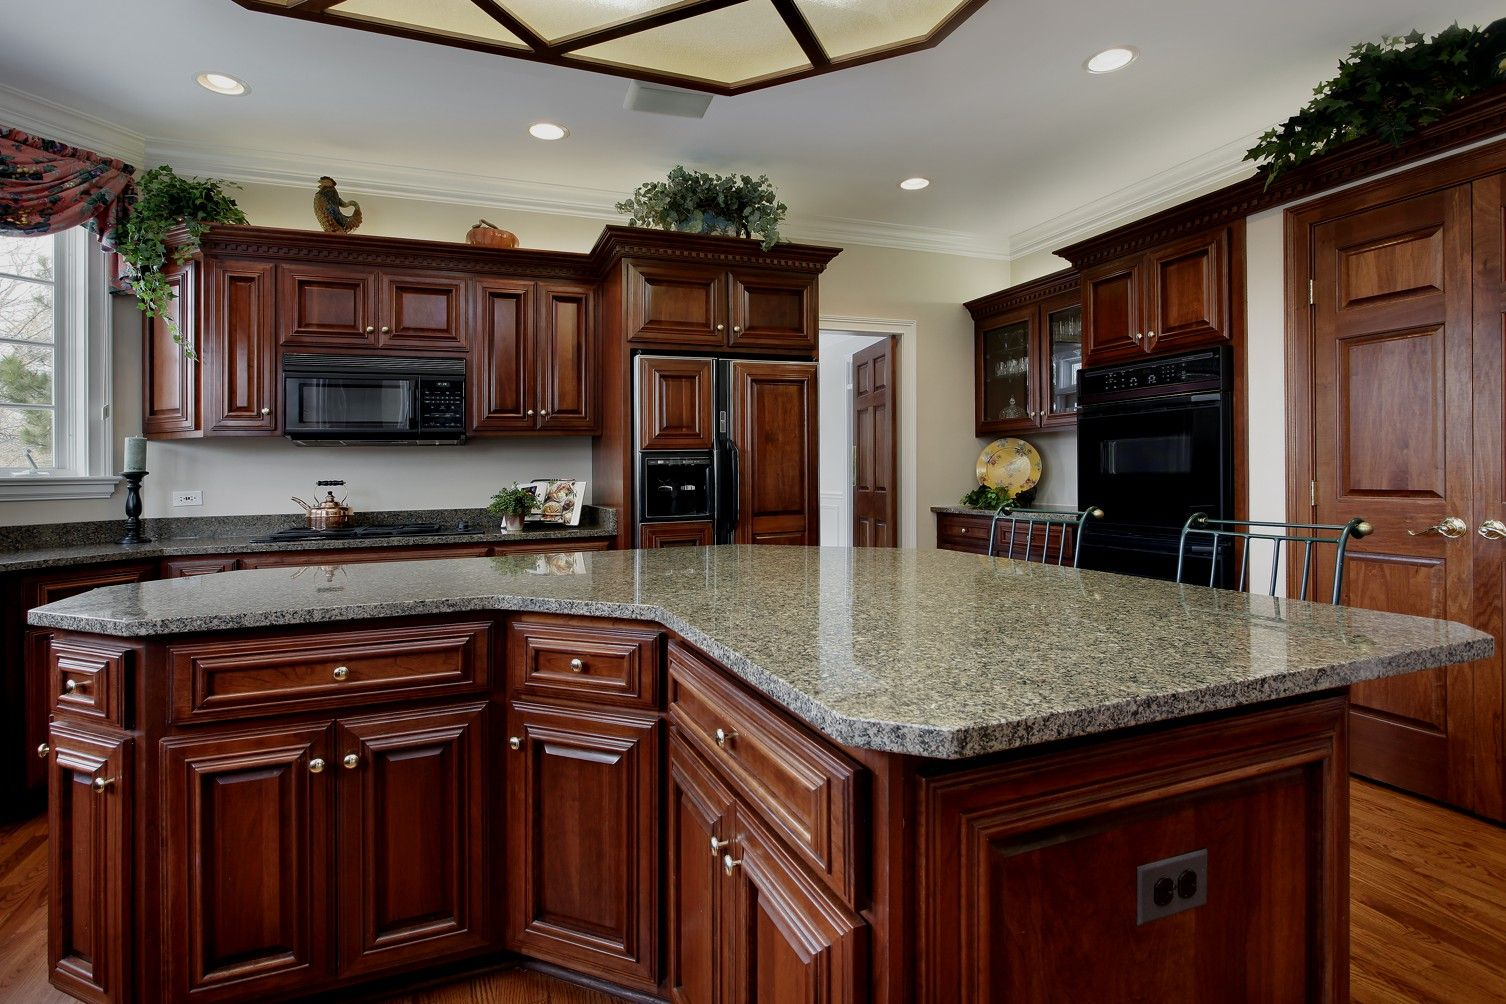 In Stock Premium Kitchen Cabinets Delivered Fast At